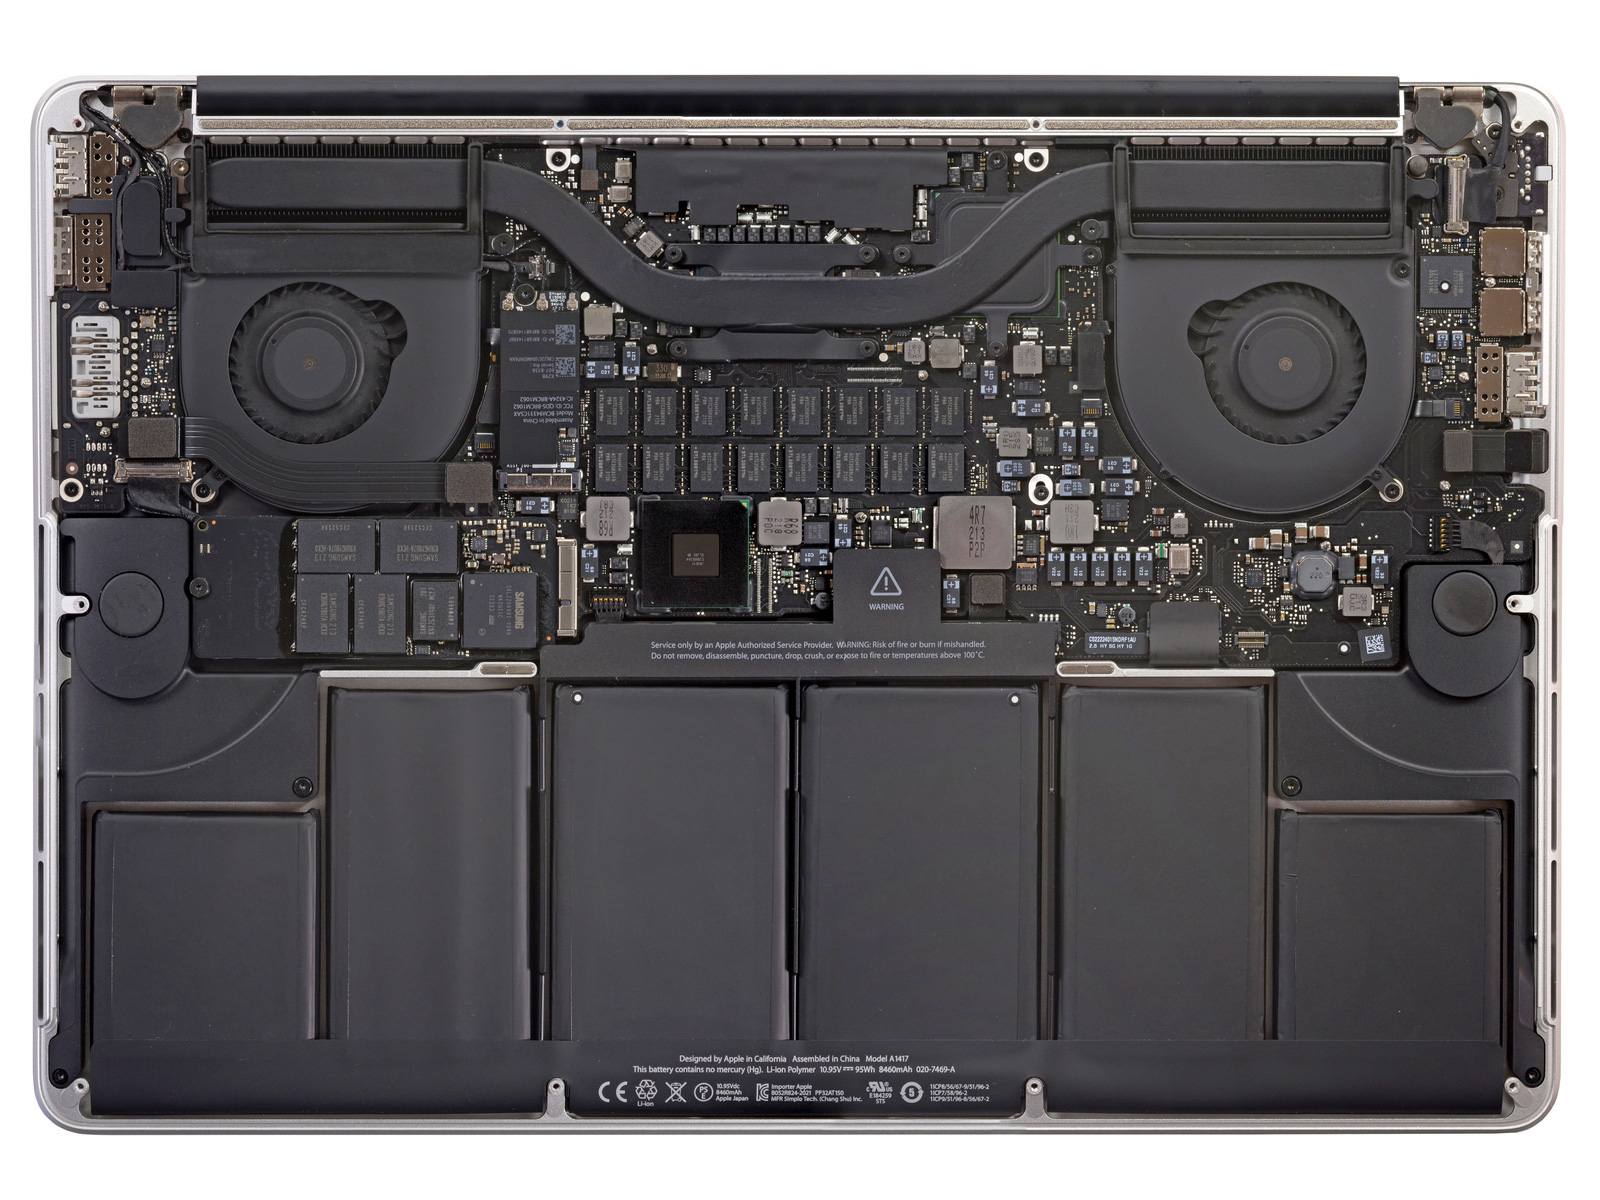 The next-gen MacBook Pro with Retina Display: SSD Analysis